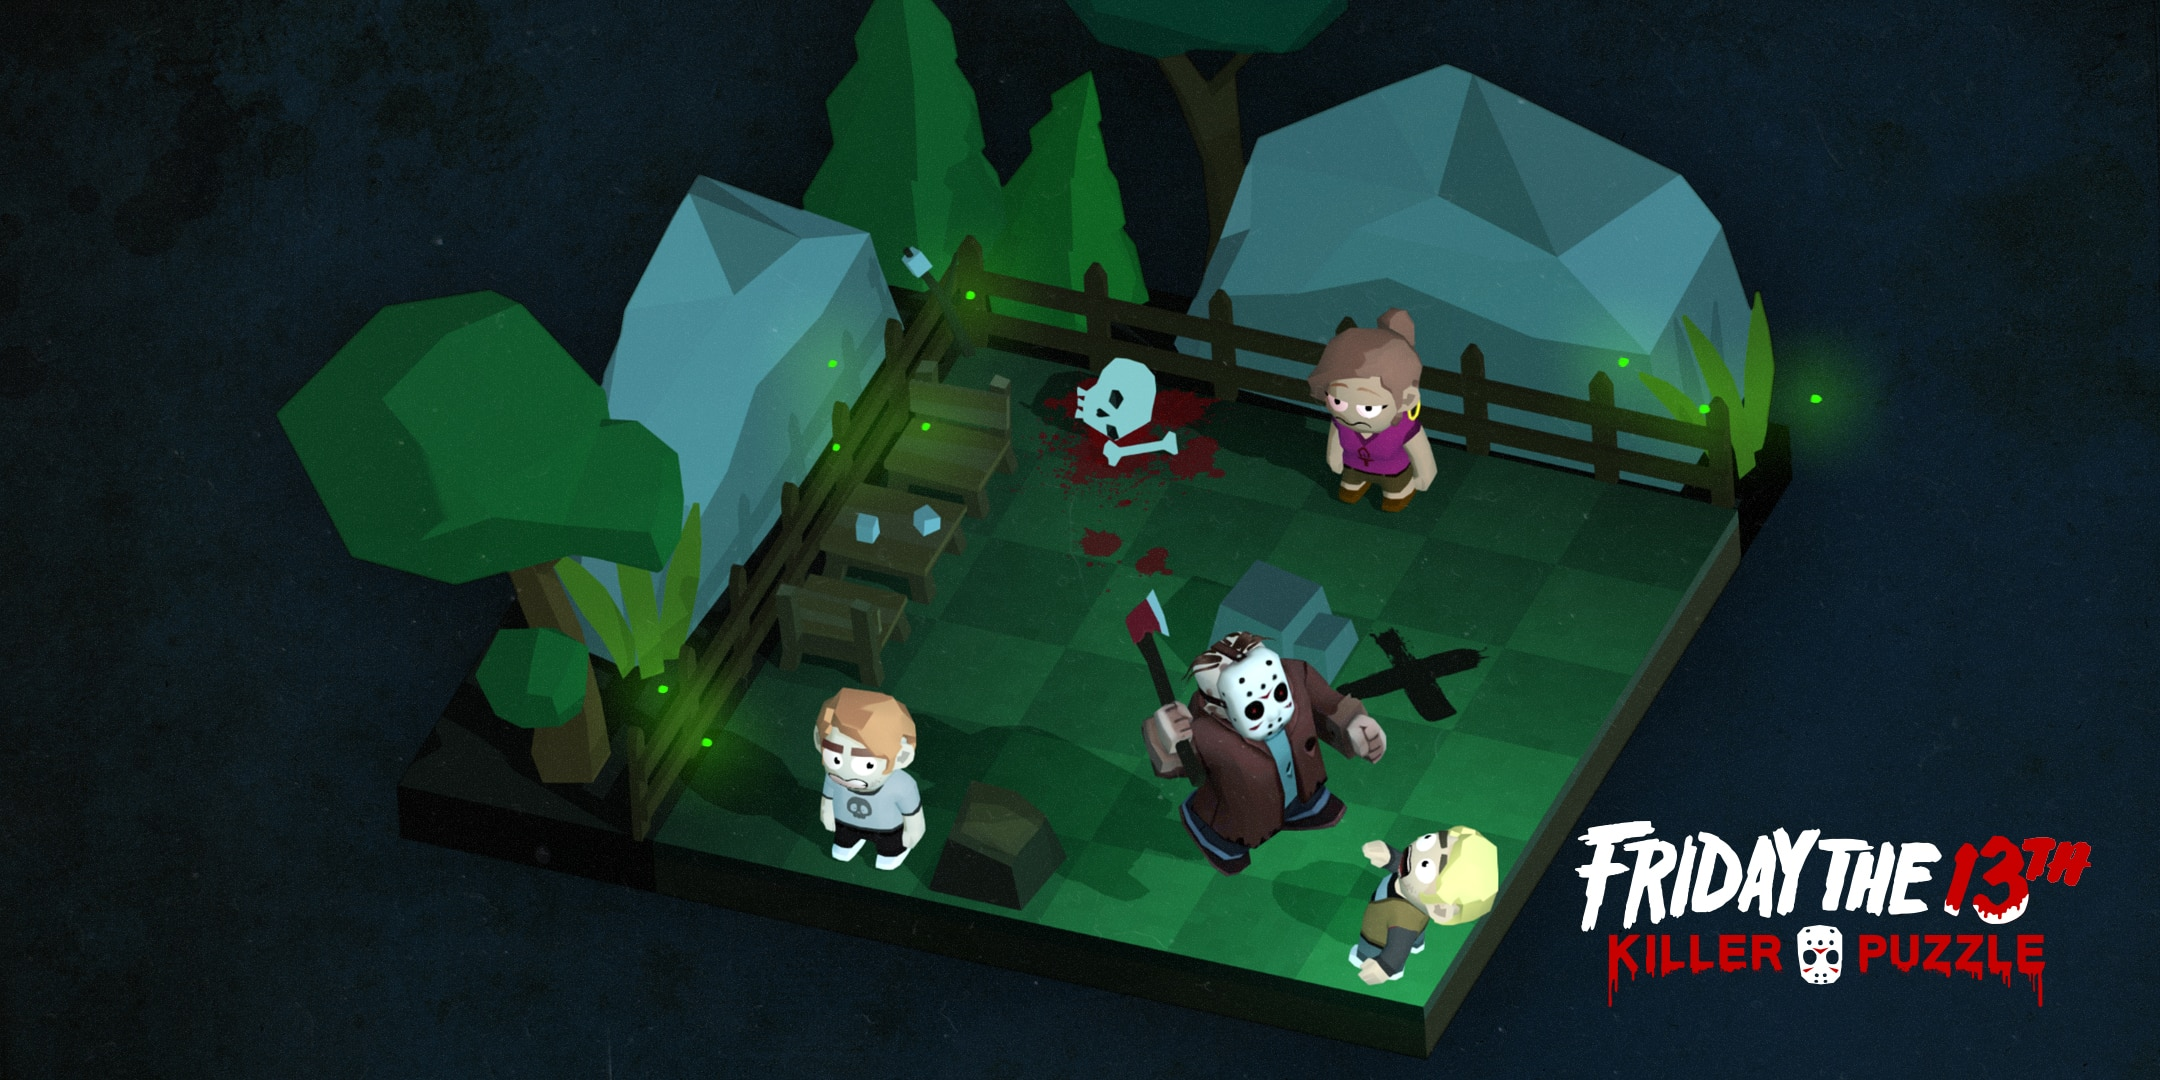 friday the 13th killer puzzle 3 - Friday the 13th: Killer Puzzle Coming from Slayaway Camp Creators; Exclusive: Developer Jason Kapalka Speaks!